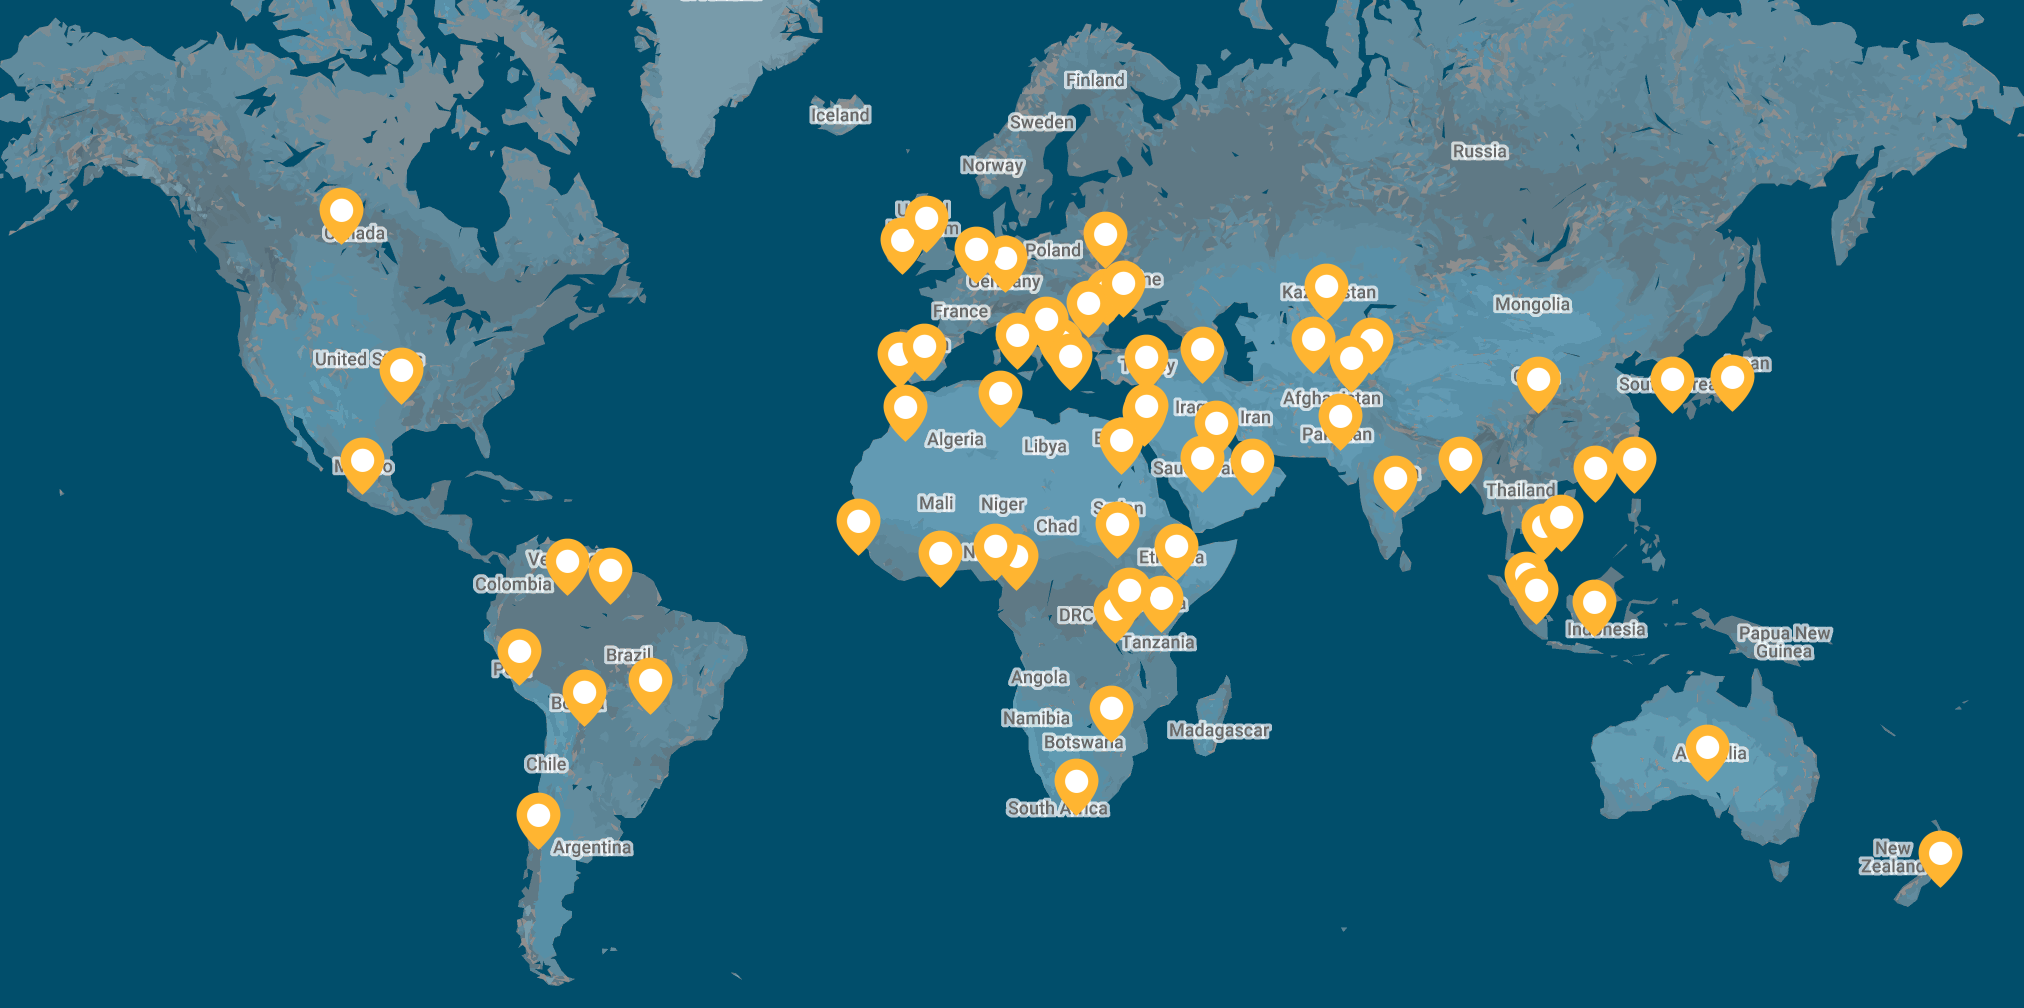 A map of the world showing 2020 Technovation Submissions. The map is dark blue with yellow pins, each pin indicating a country where at least one team created technology for social good.